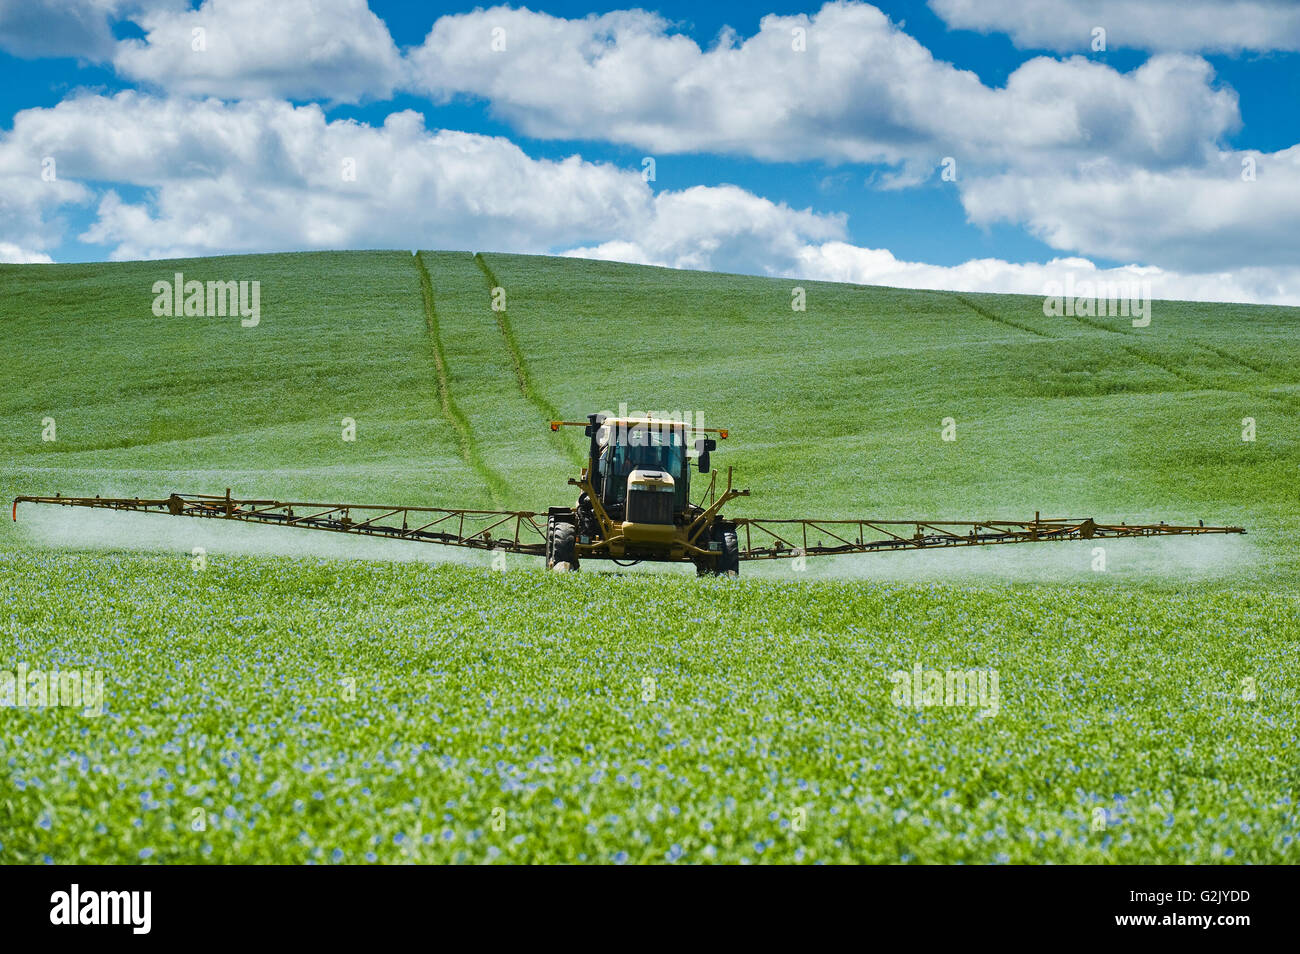 a high clearance sprayer applies a chemical application of fungicide to a flax field, Tiger Hills, Manitoba, Canada - Stock Image